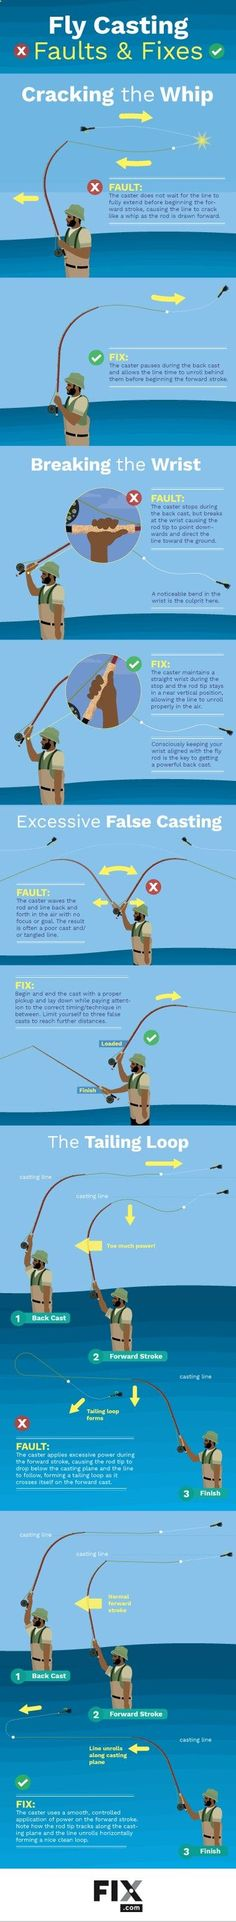 Improve Your Casting With These Fly Fishing Tips | Fix.com